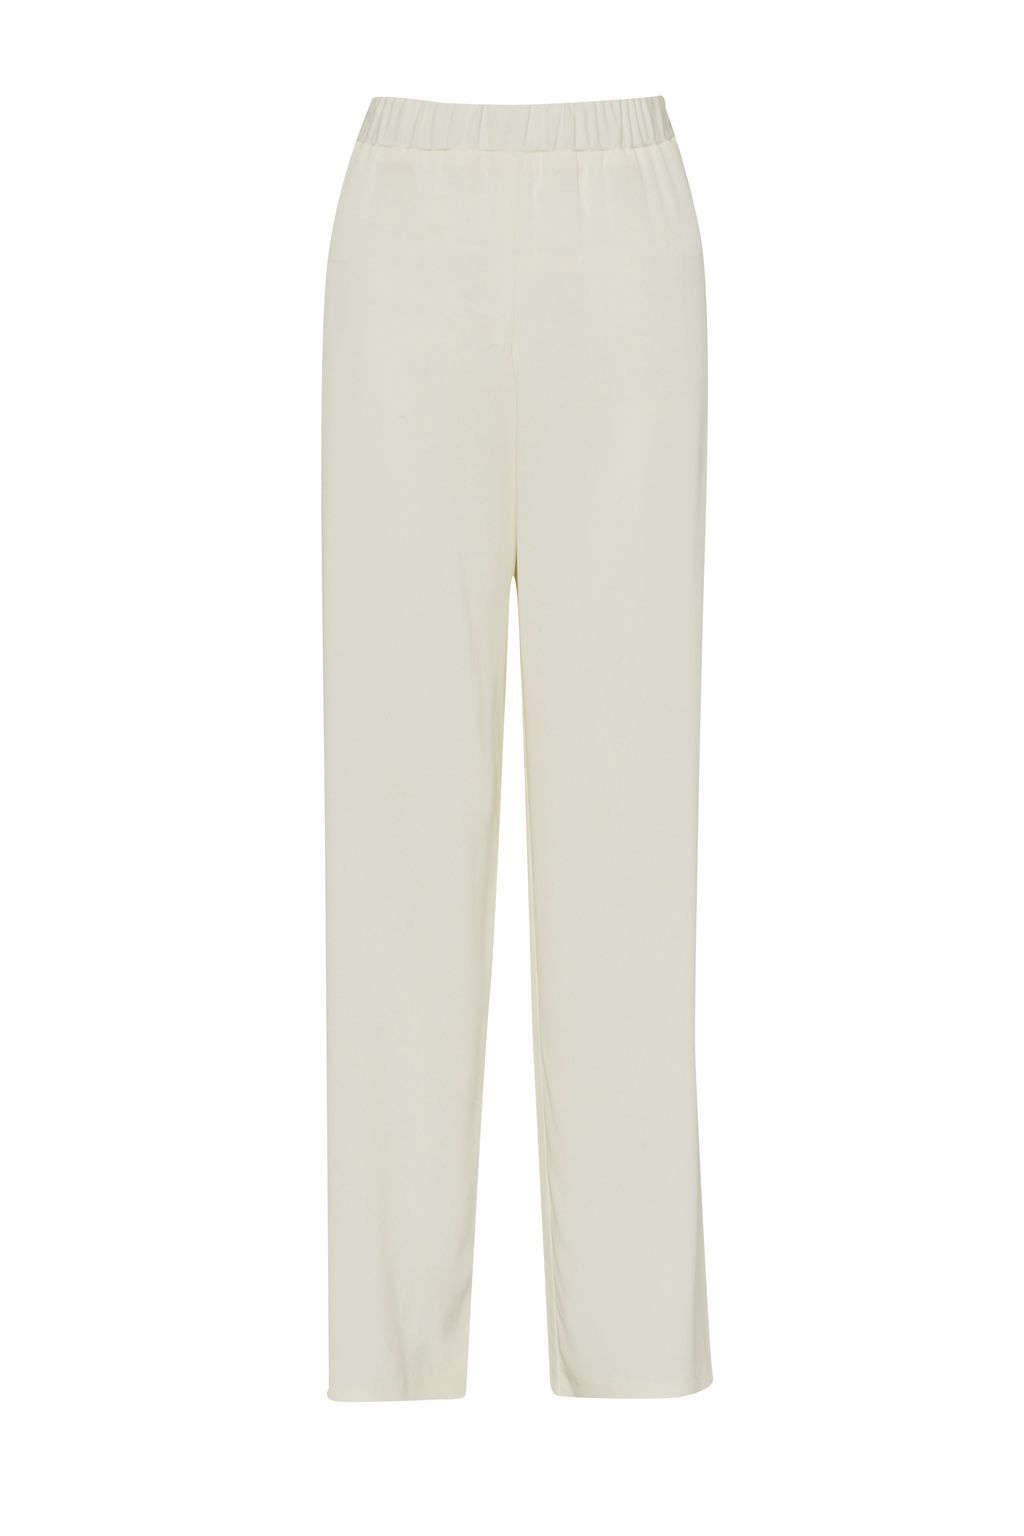 Cassie Drape Wide Leg Trousers, White - length: standard; pattern: plain; style: palazzo; waist: mid/regular rise; predominant colour: white; occasions: casual, evening, work; fibres: viscose/rayon - 100%; fit: wide leg; texture group: woven light midweight; season: s/s 2015; wardrobe: basic